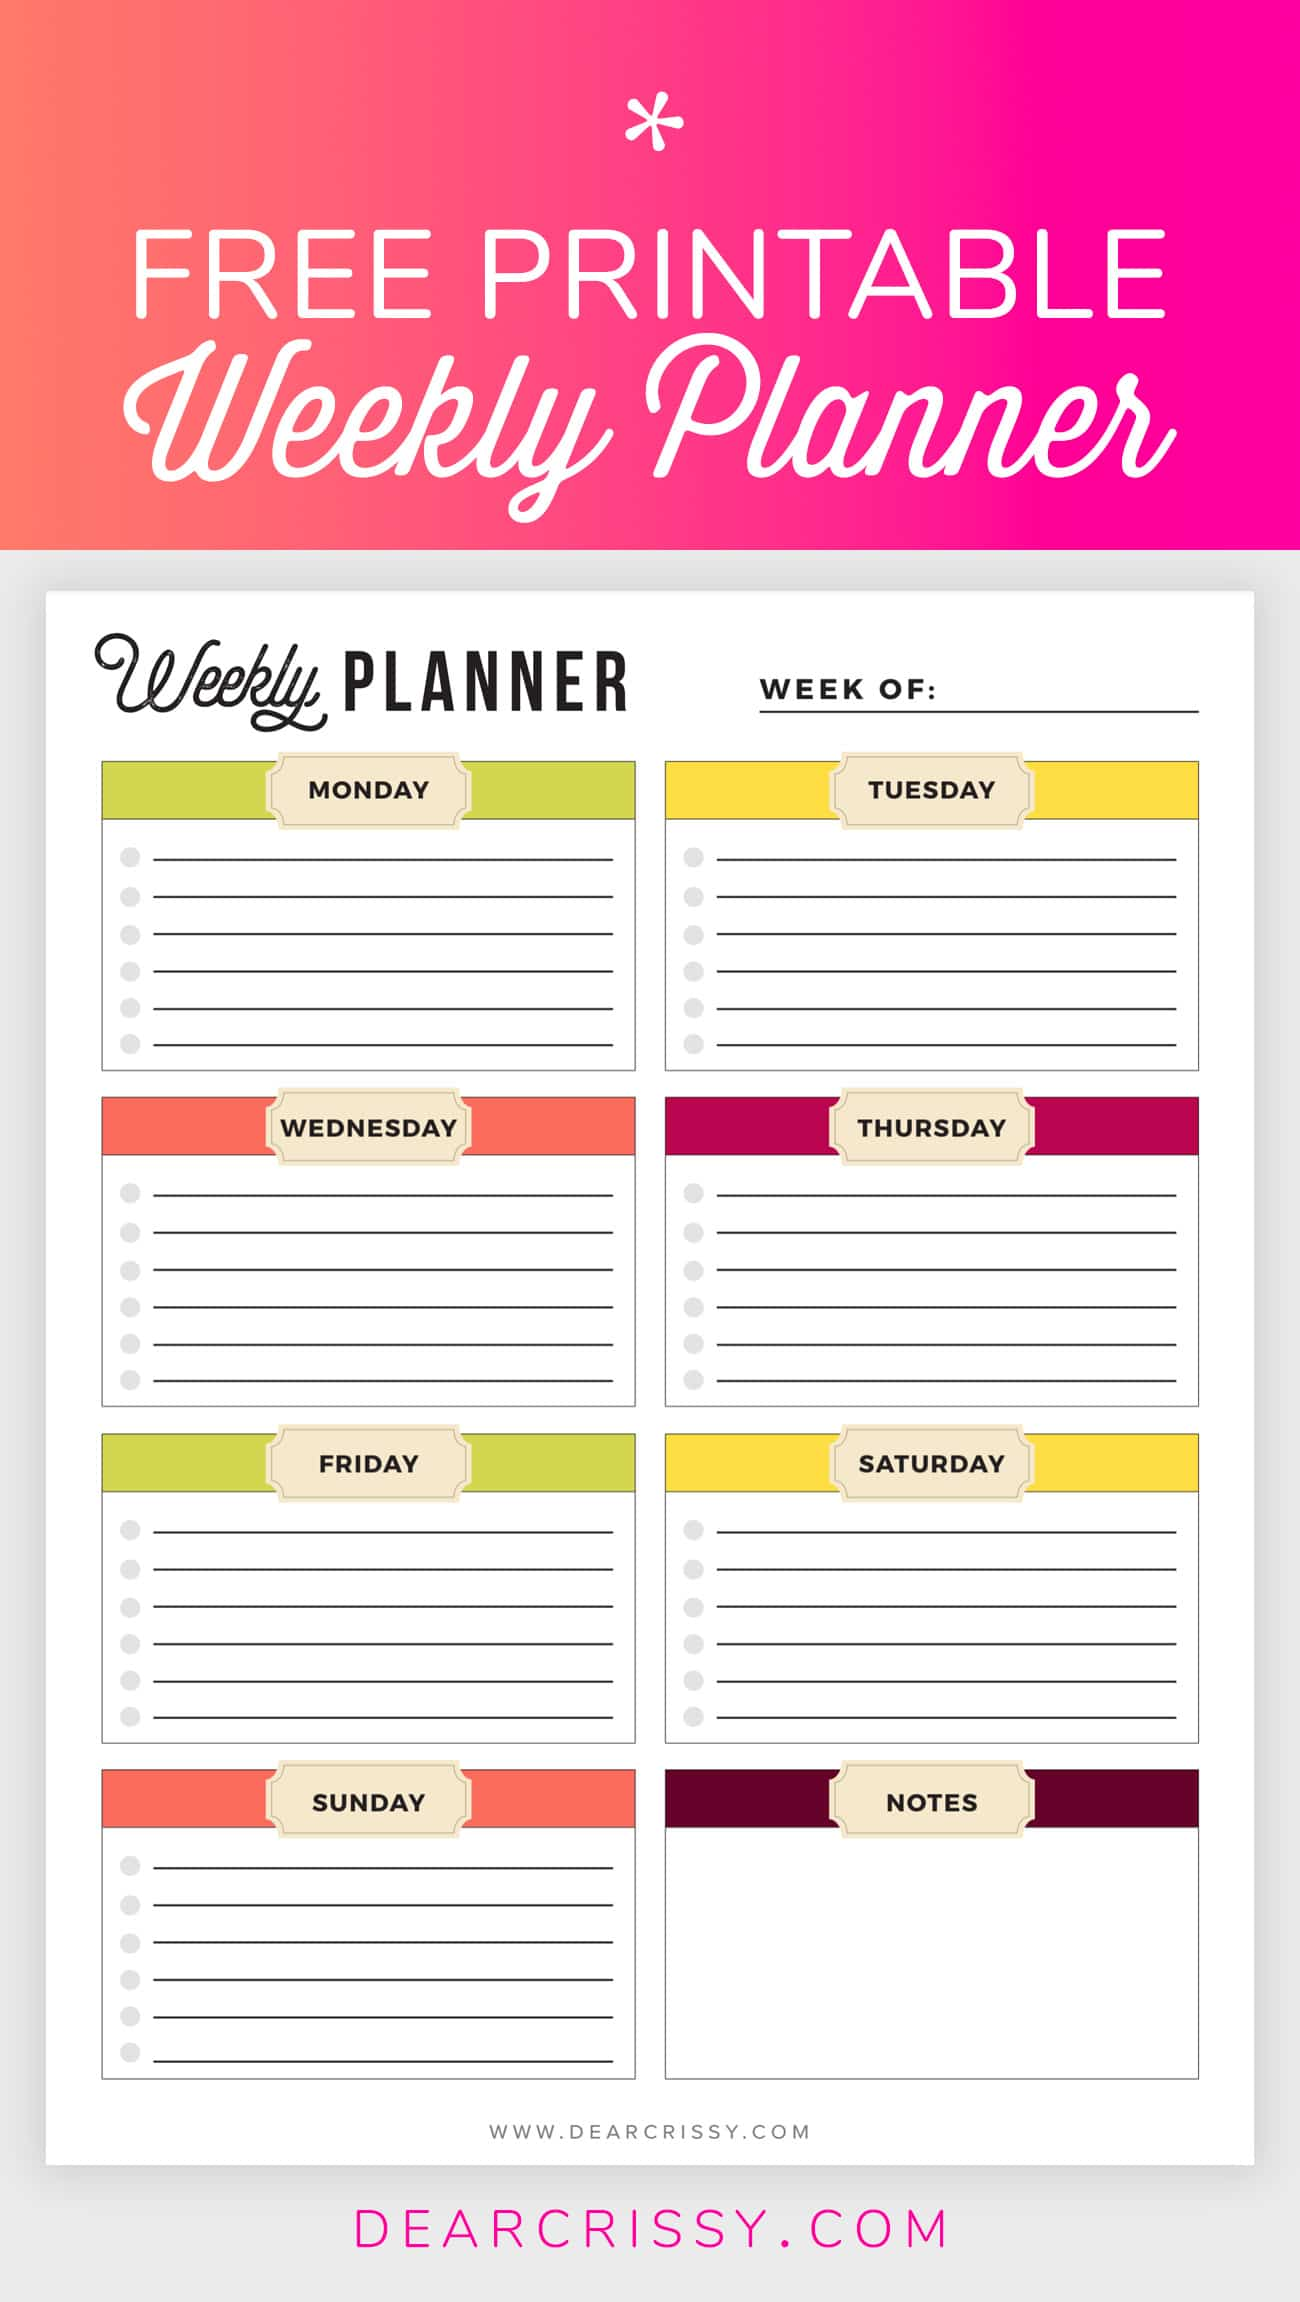 image relating to Free Printable Planners referred to as Cost-free Printable Weekly Planner - Weekly Planner Printable!